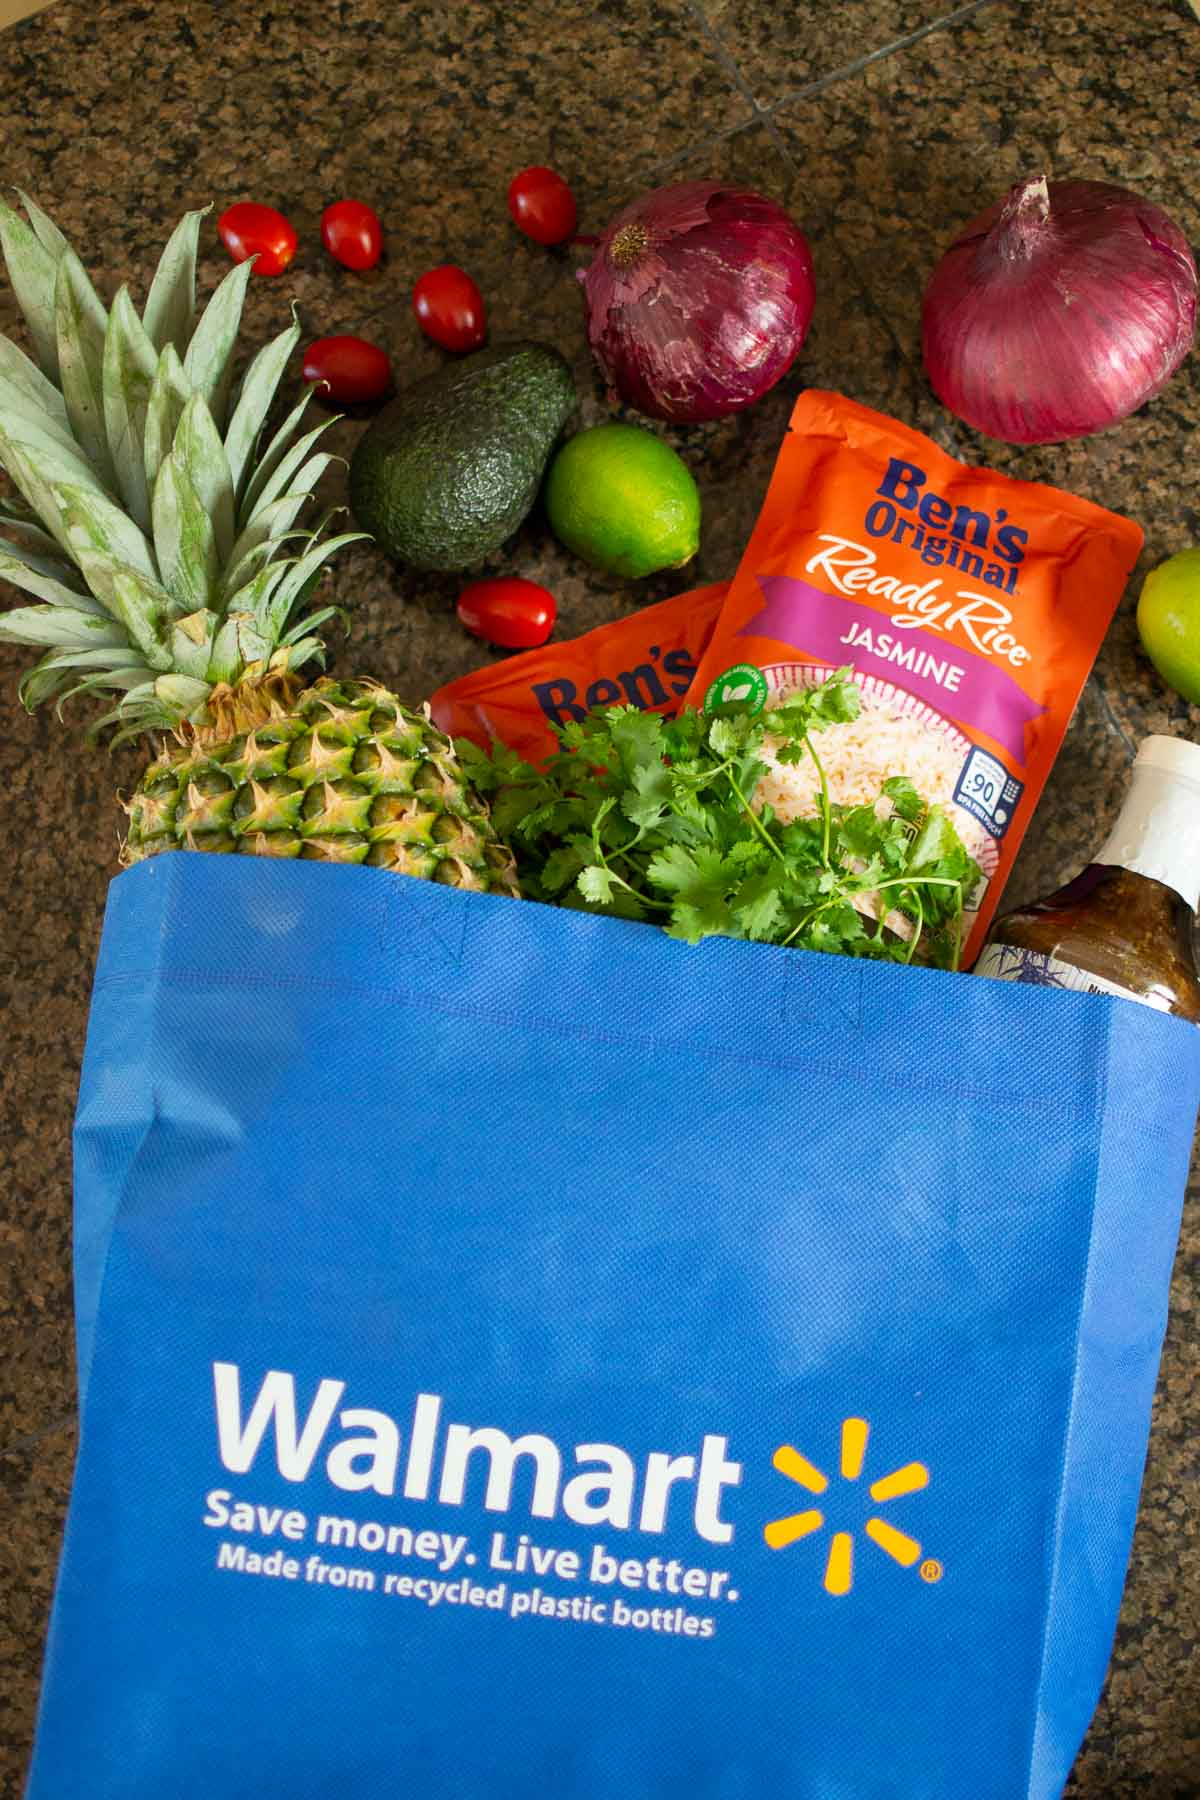 Walmart grocery bag with ingredients to make the chicken bowls spilling out of the top